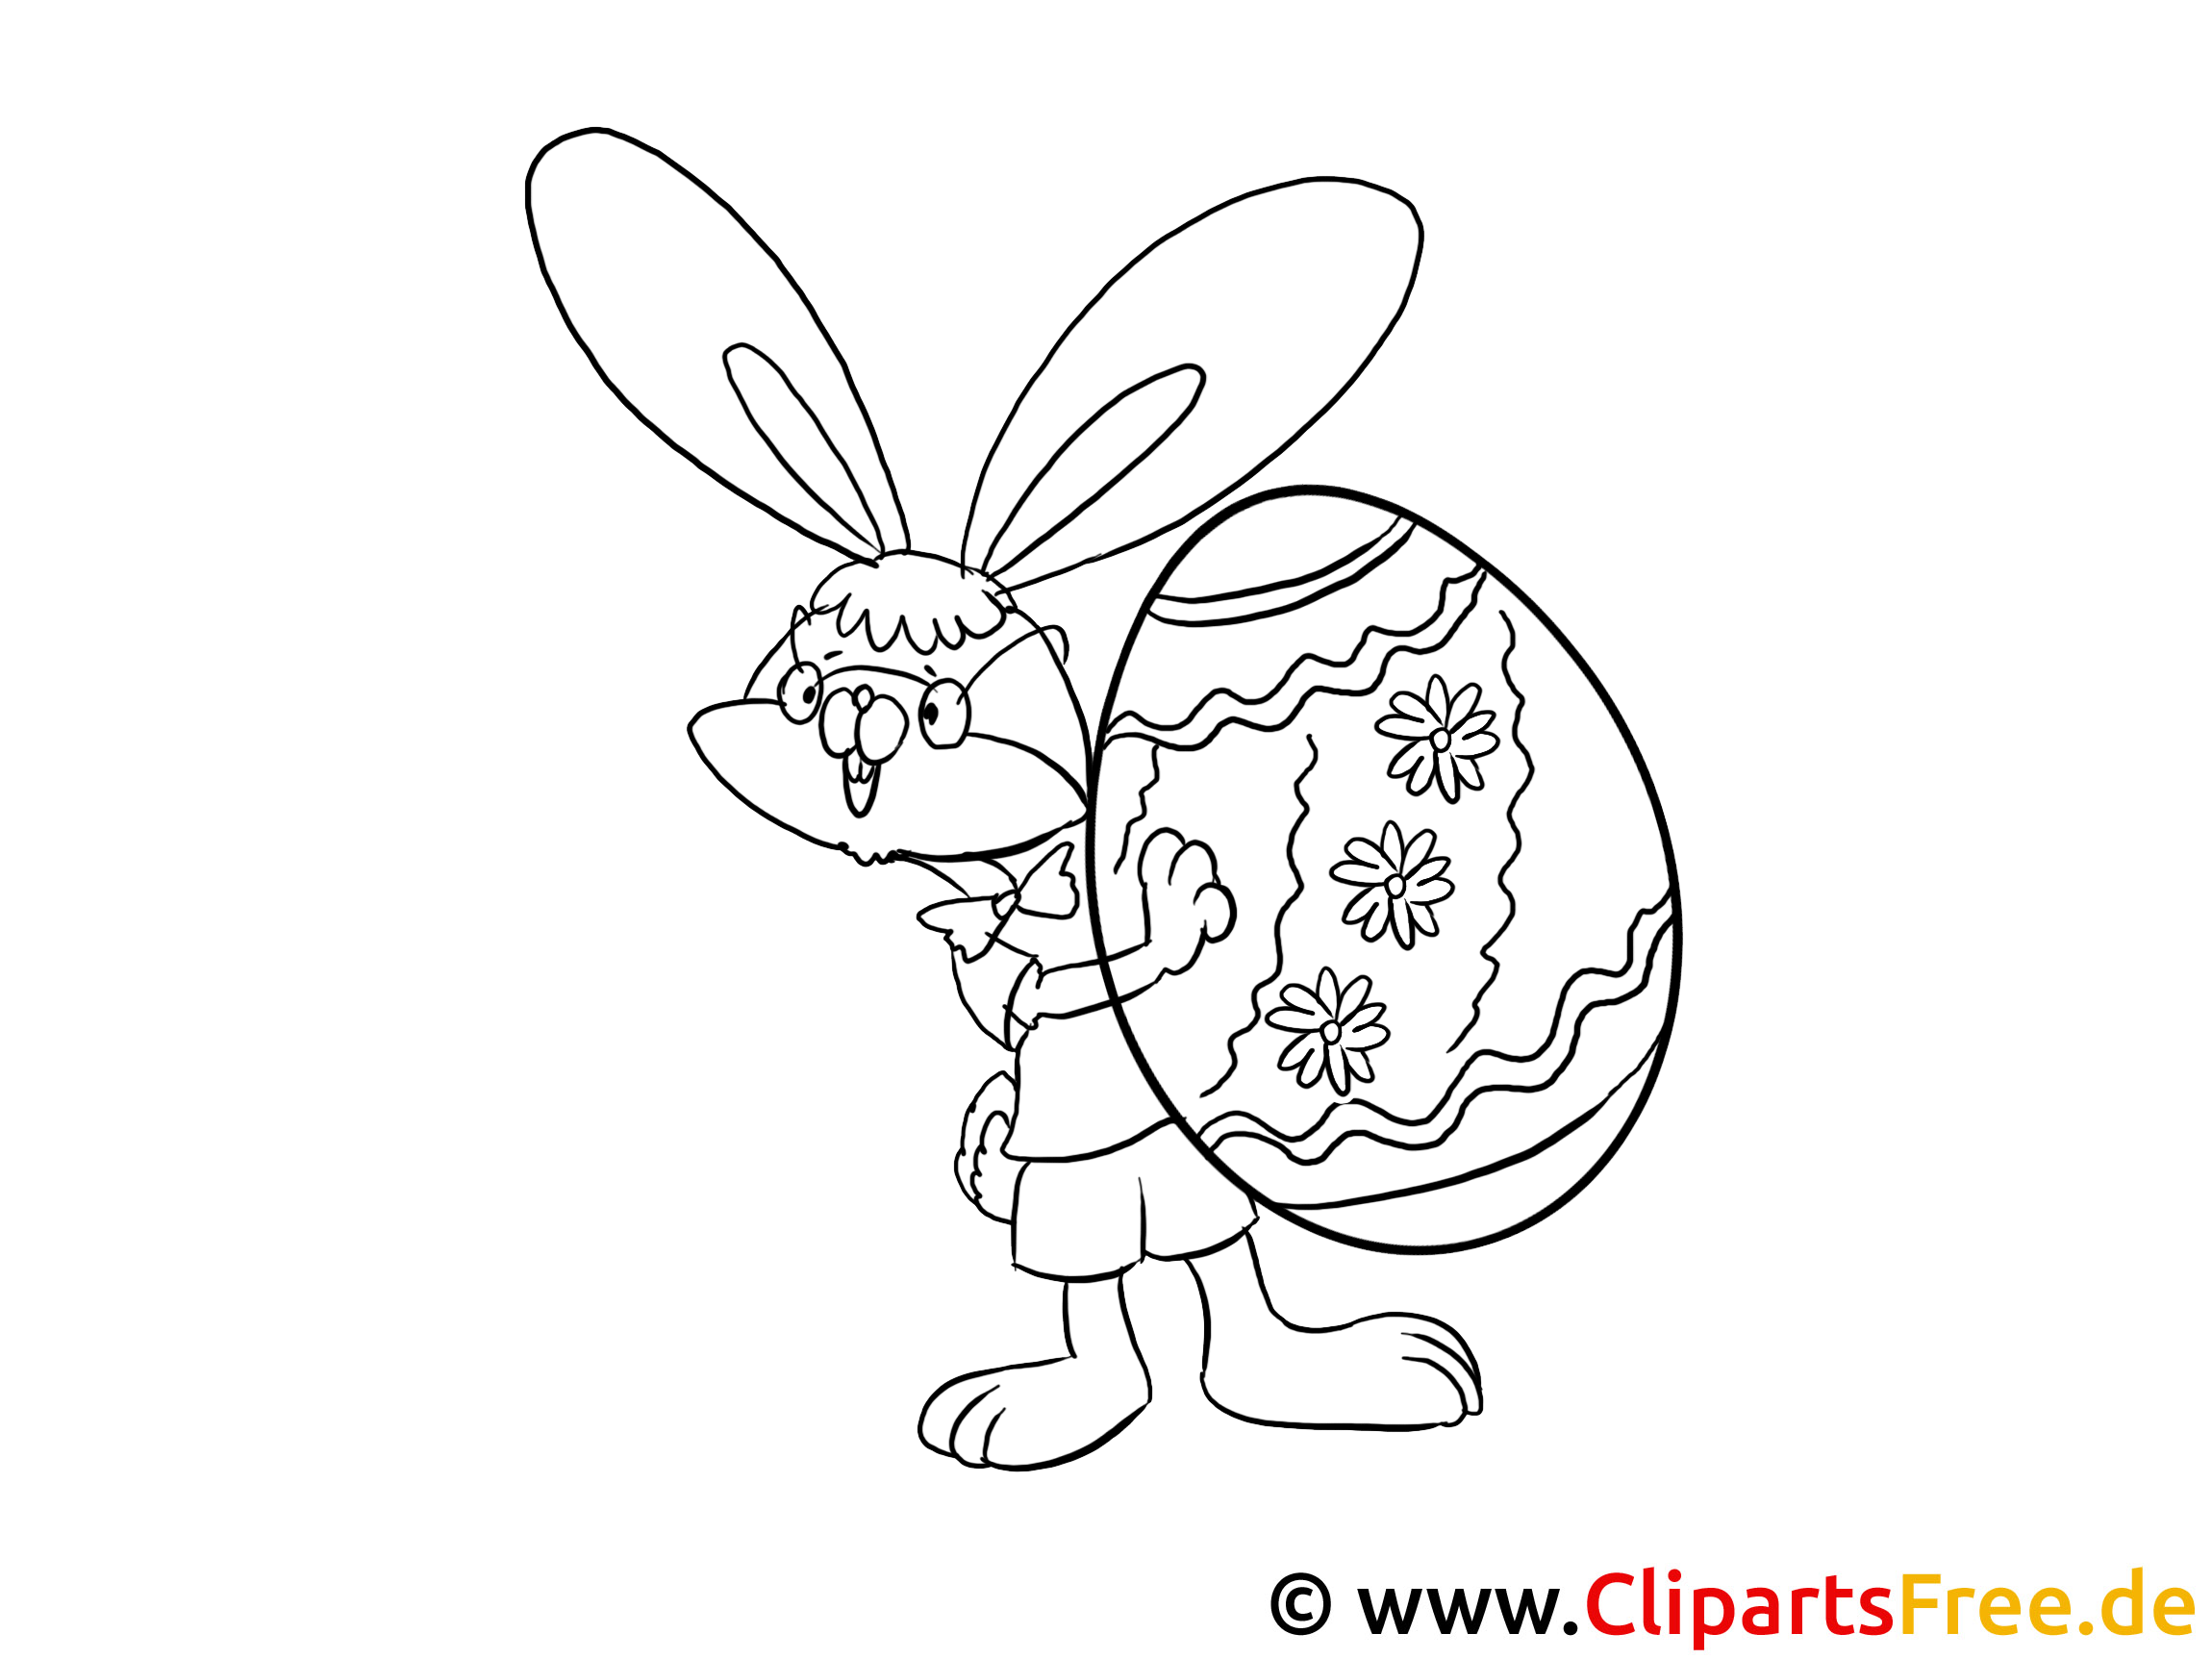 Happy Easter Pictures for draw